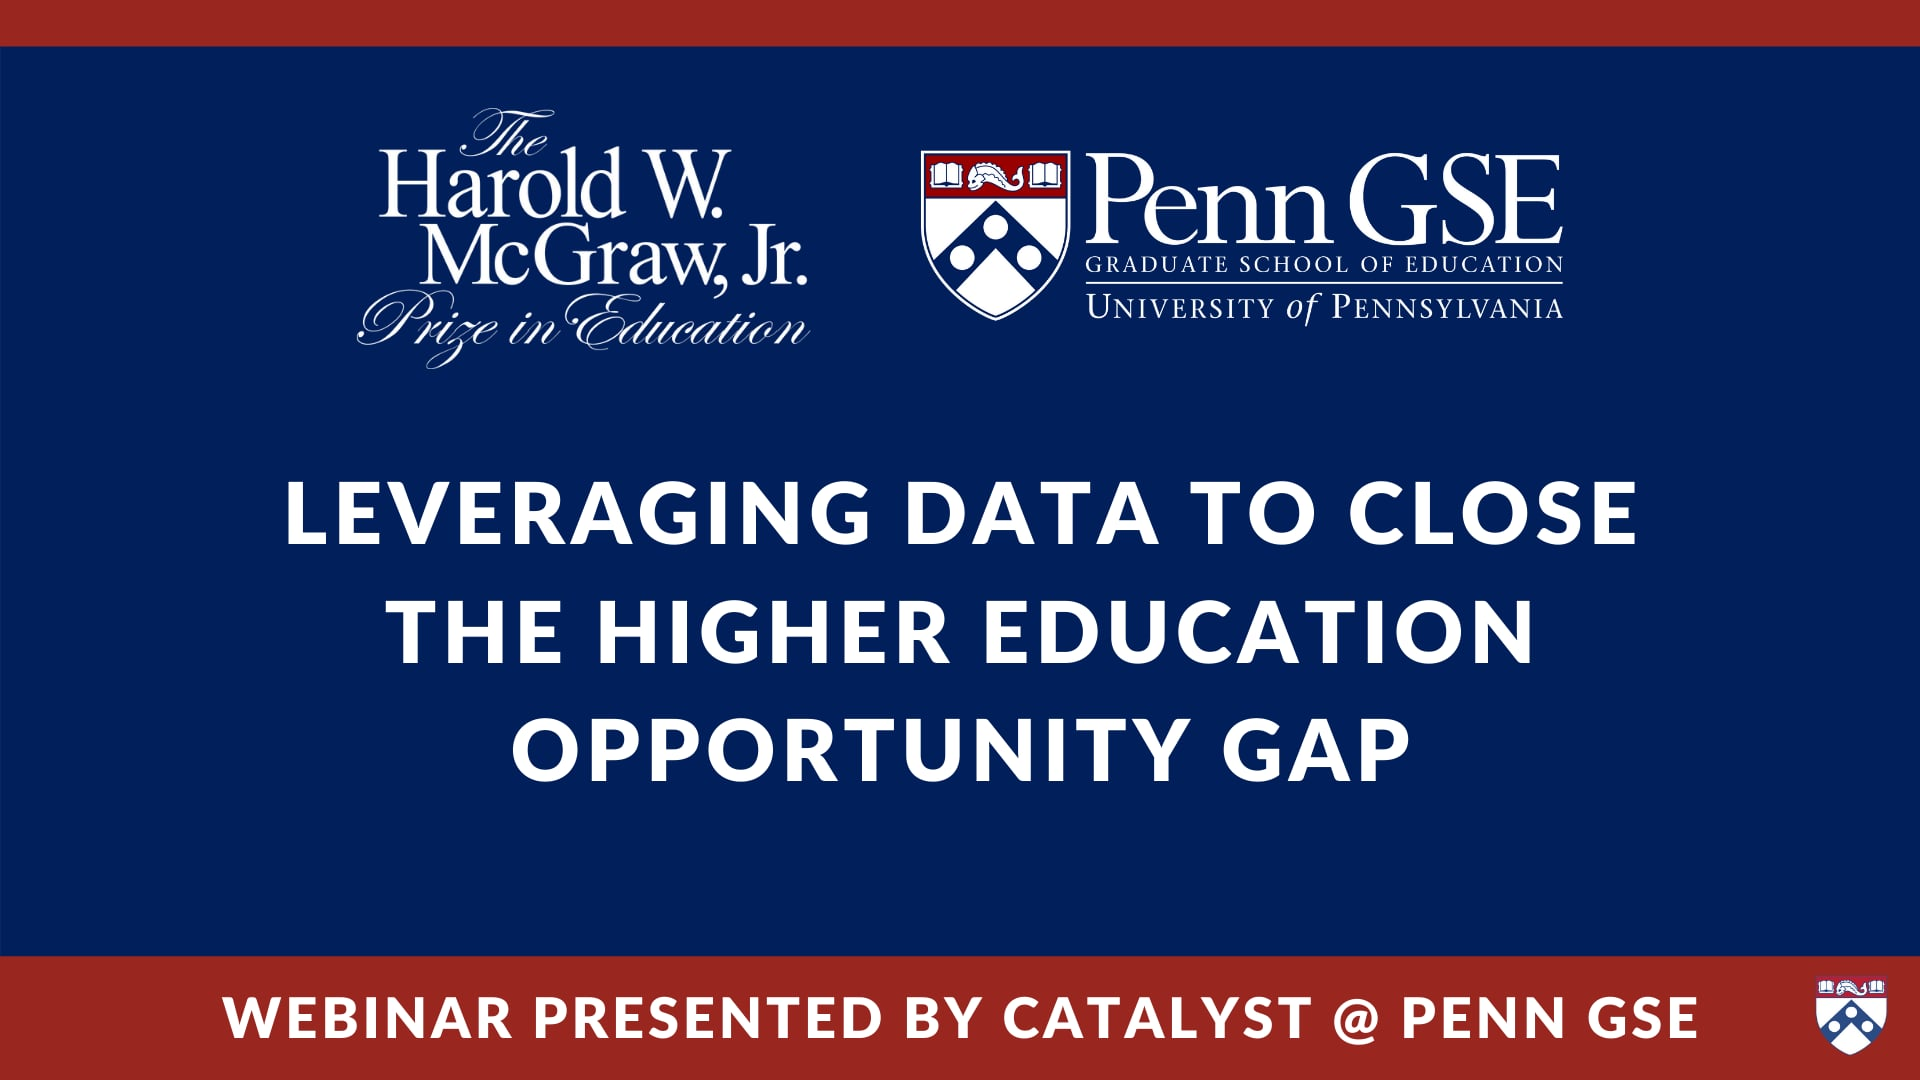 Play video: Leveraging Data to Close the Higher Education Opportunity Gap